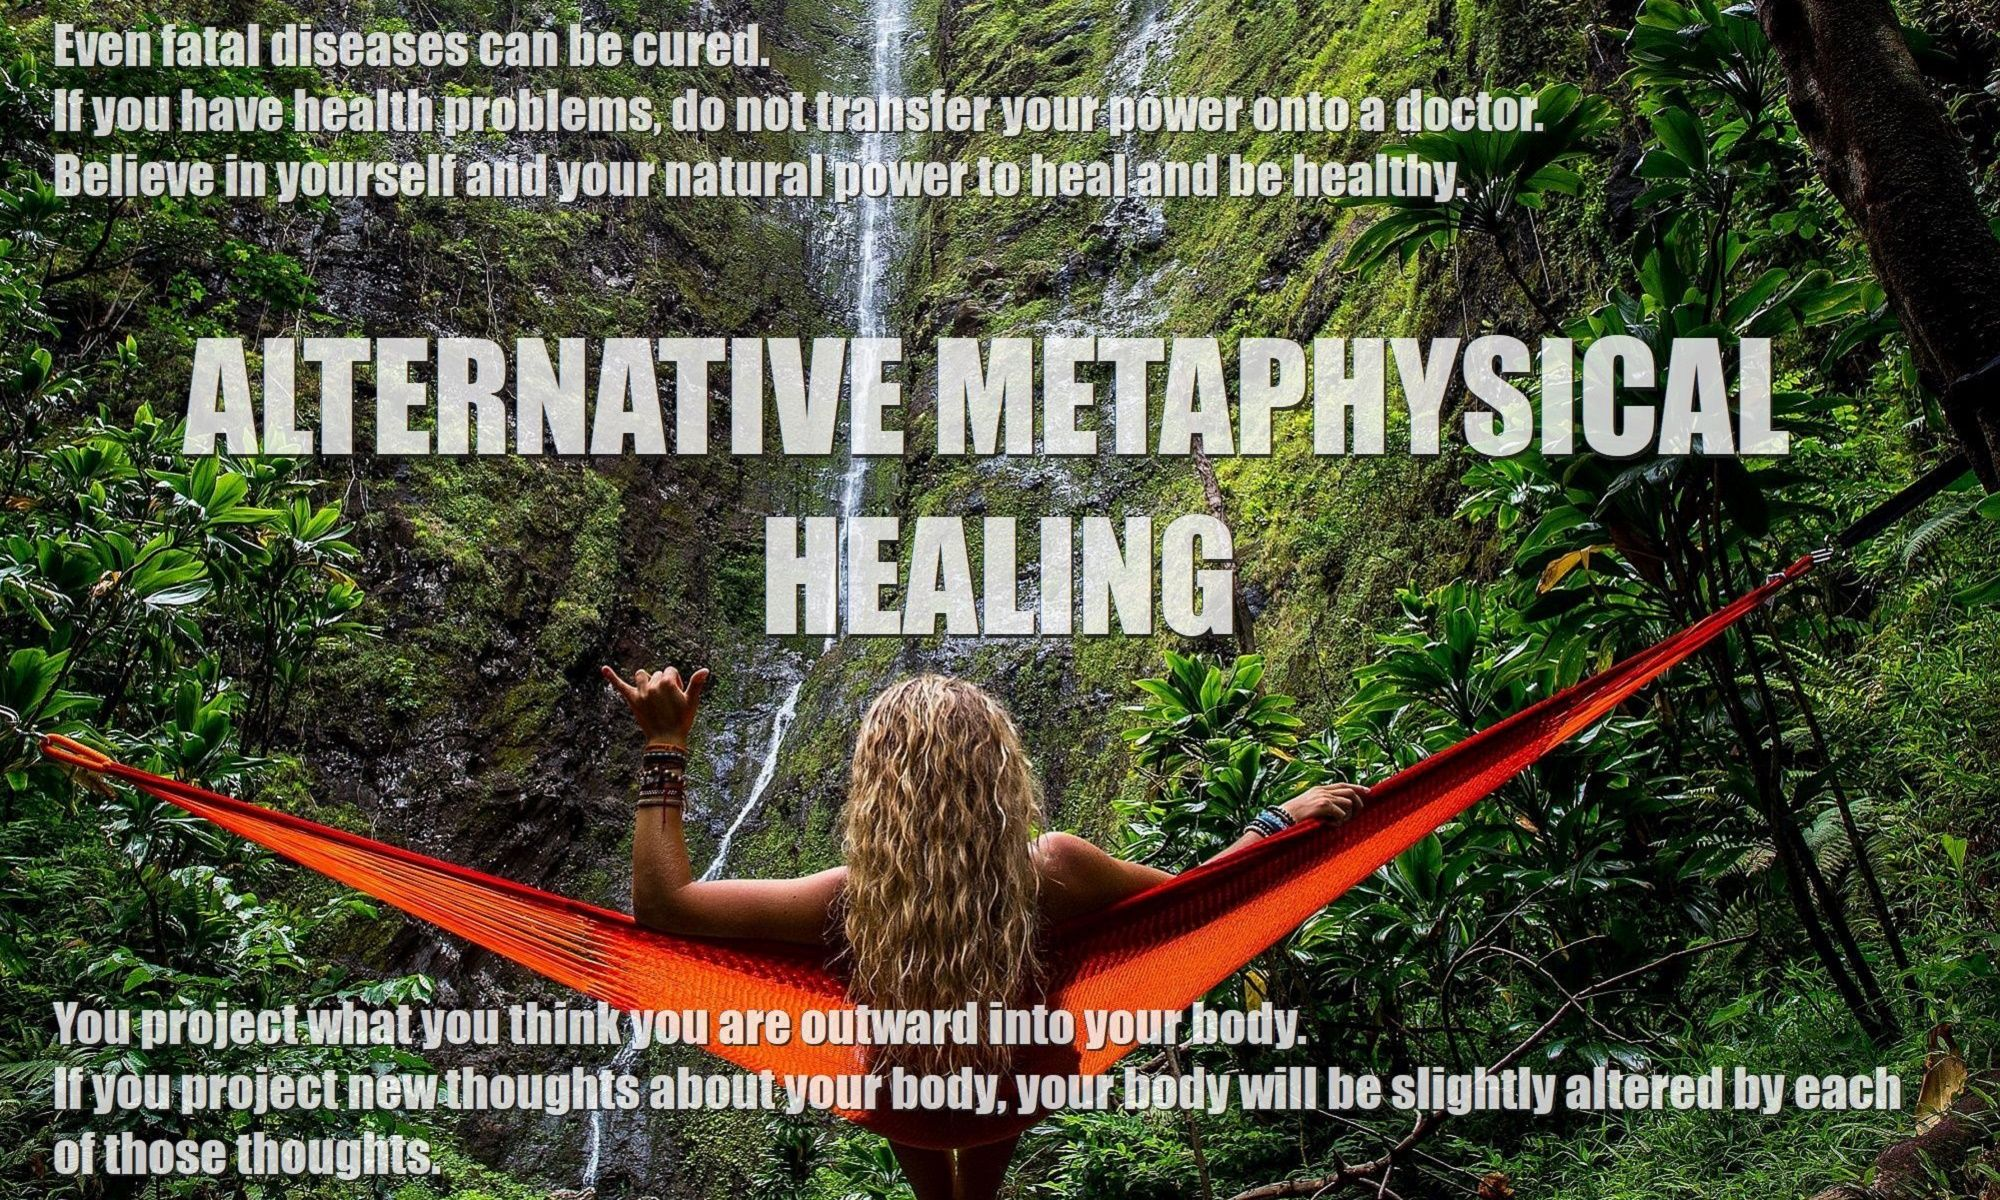 Mind-thoughts-heal-body-alternative-metaphysical-healing-cures-health-solutions-1a-2000